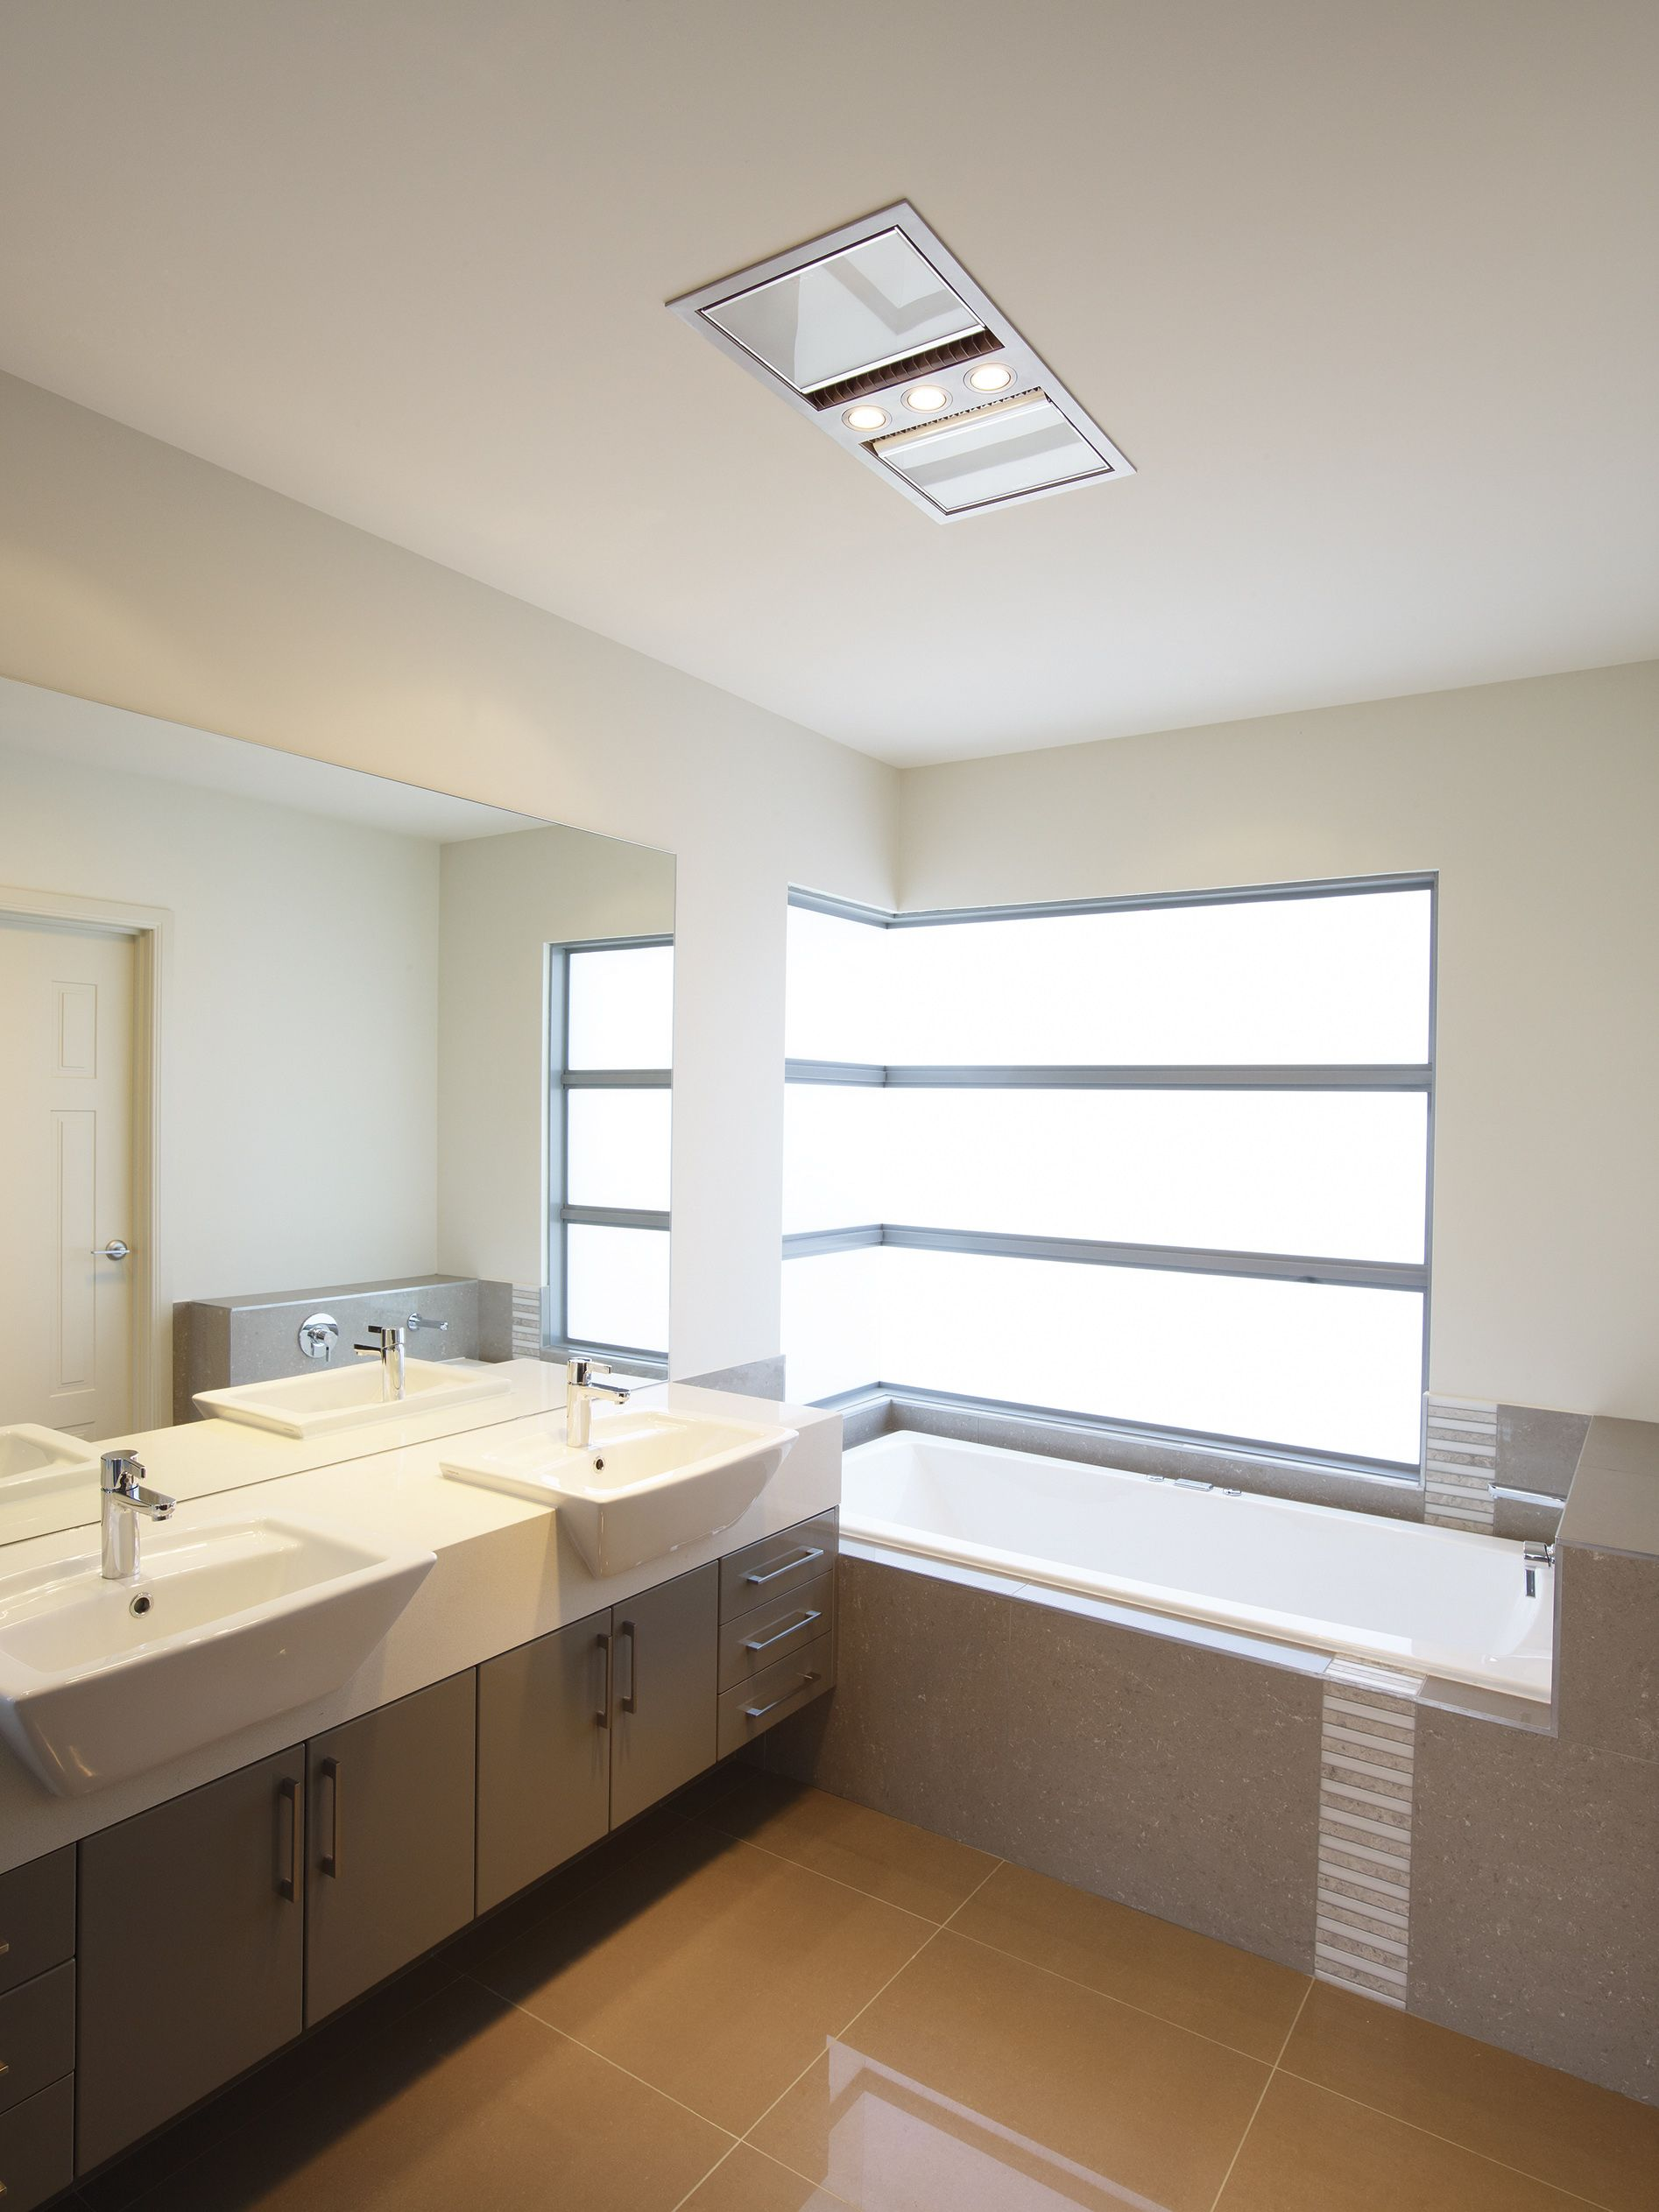 for com fan intended stylish latest michalchovanec with posts led light exhaust bathroom under